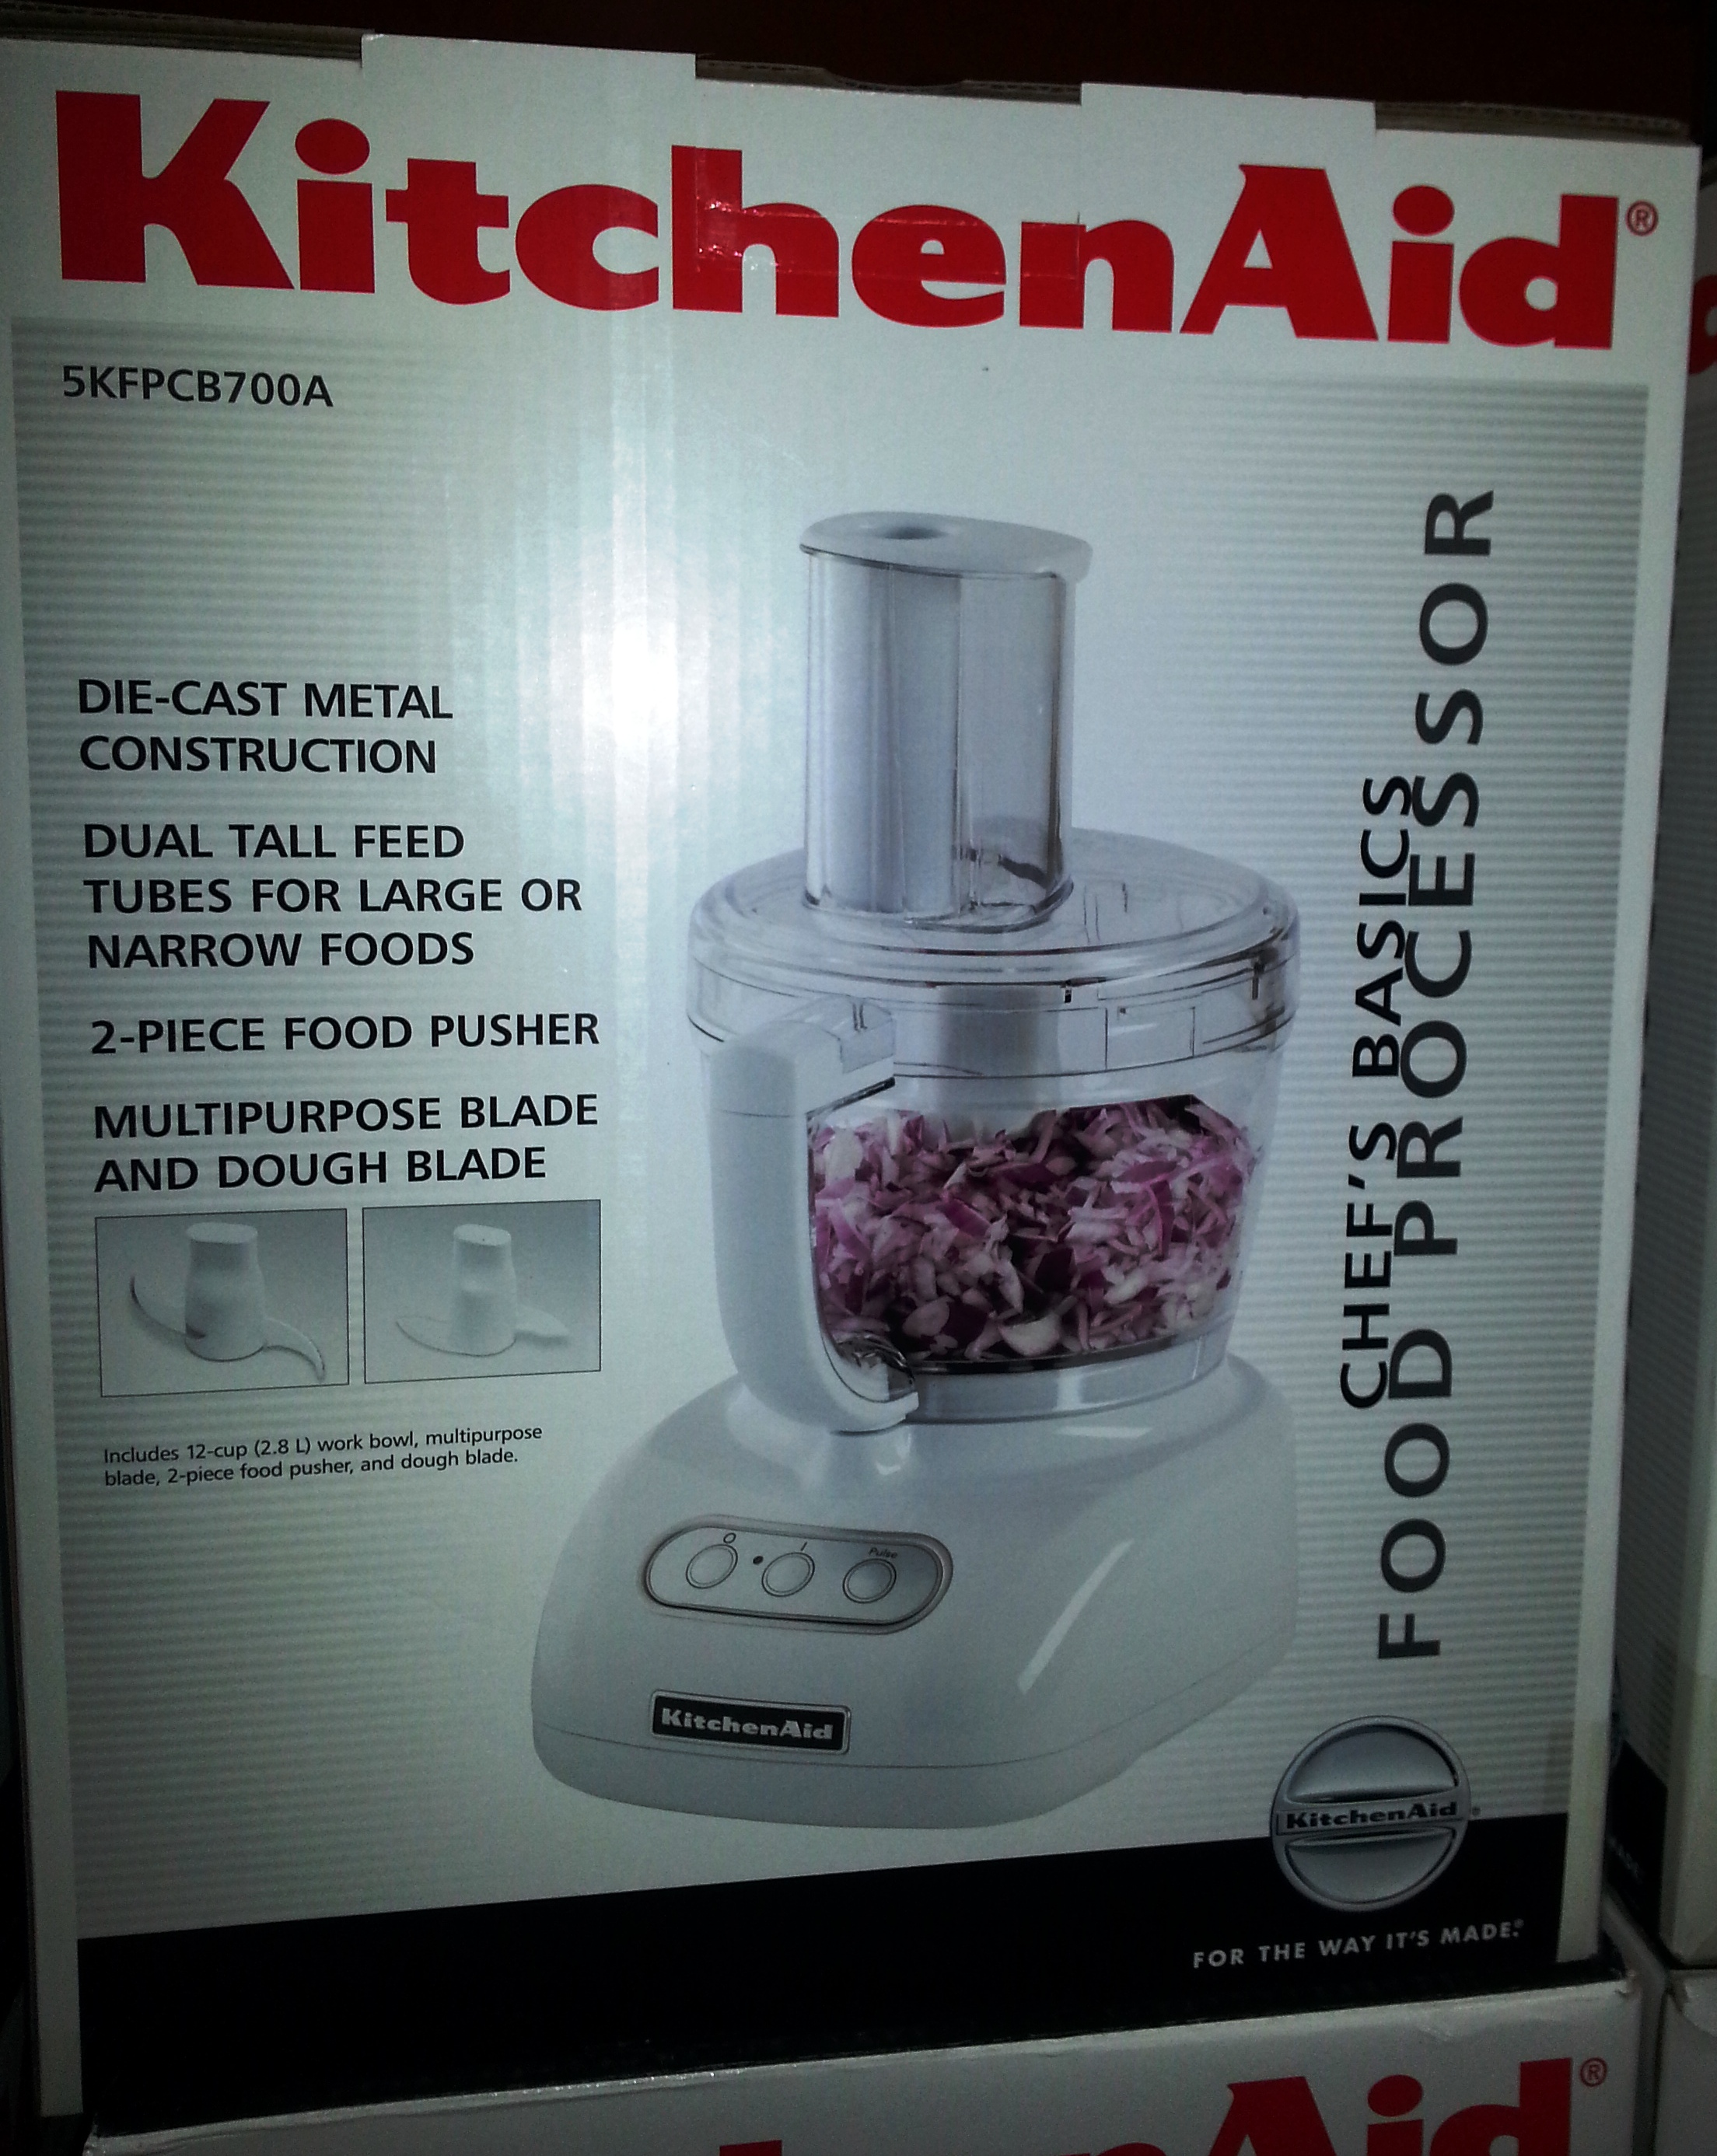 Tags: Kitchen Aid ...